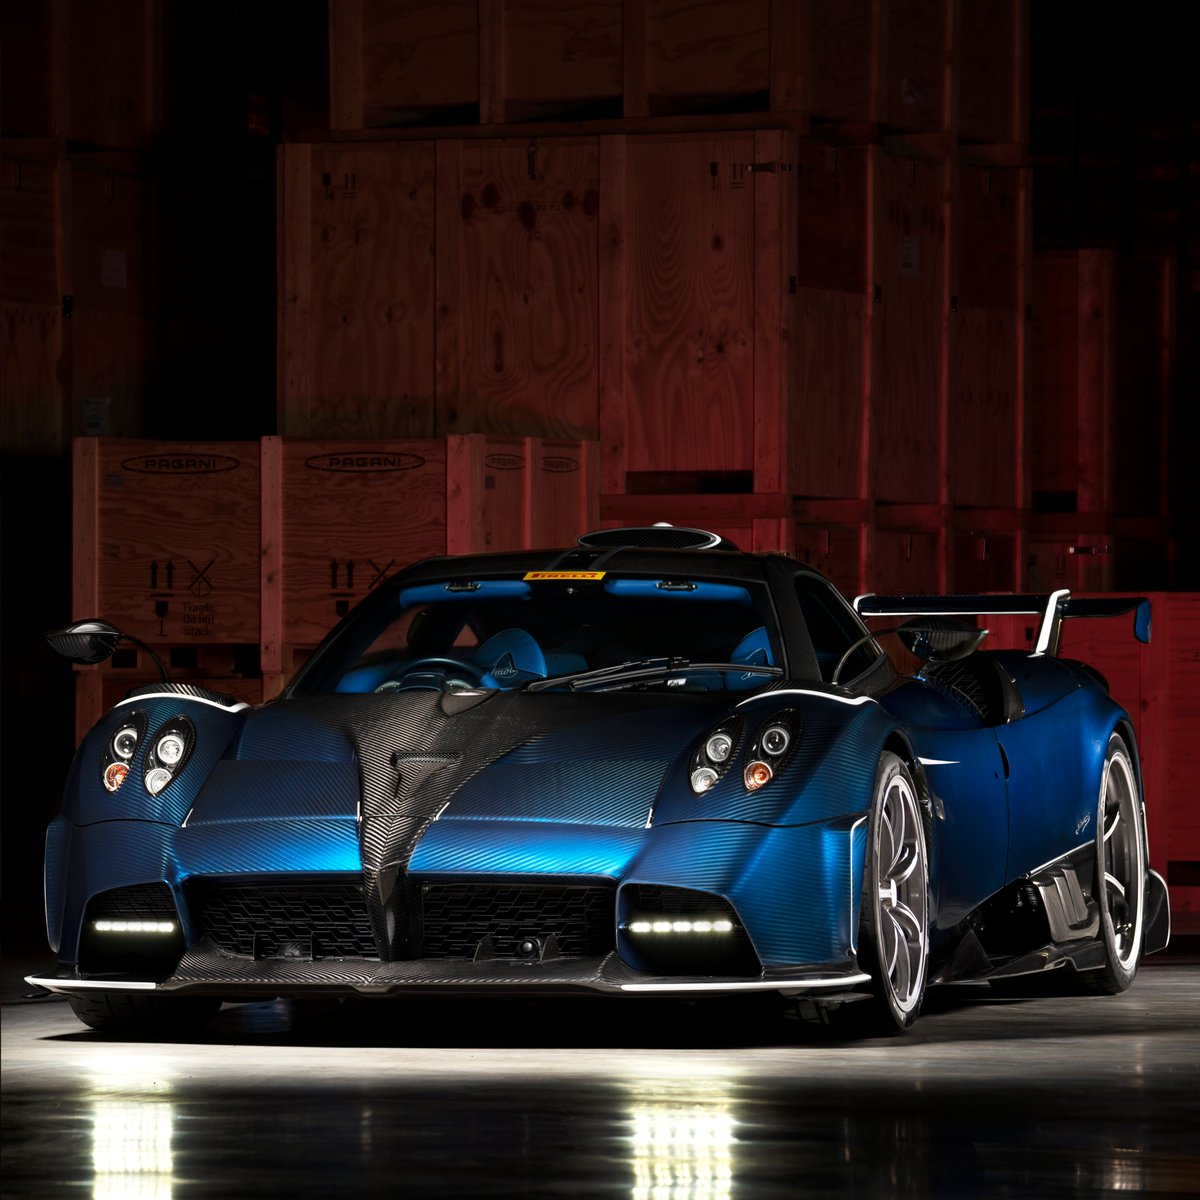 Pagani Automobili On Twitter The Pagani Imola Has A Really Strong Design 100 Meant For The Track Yet It Can Certainly Catch The Eye This Is The 3 Of 5 Specimen And It Is